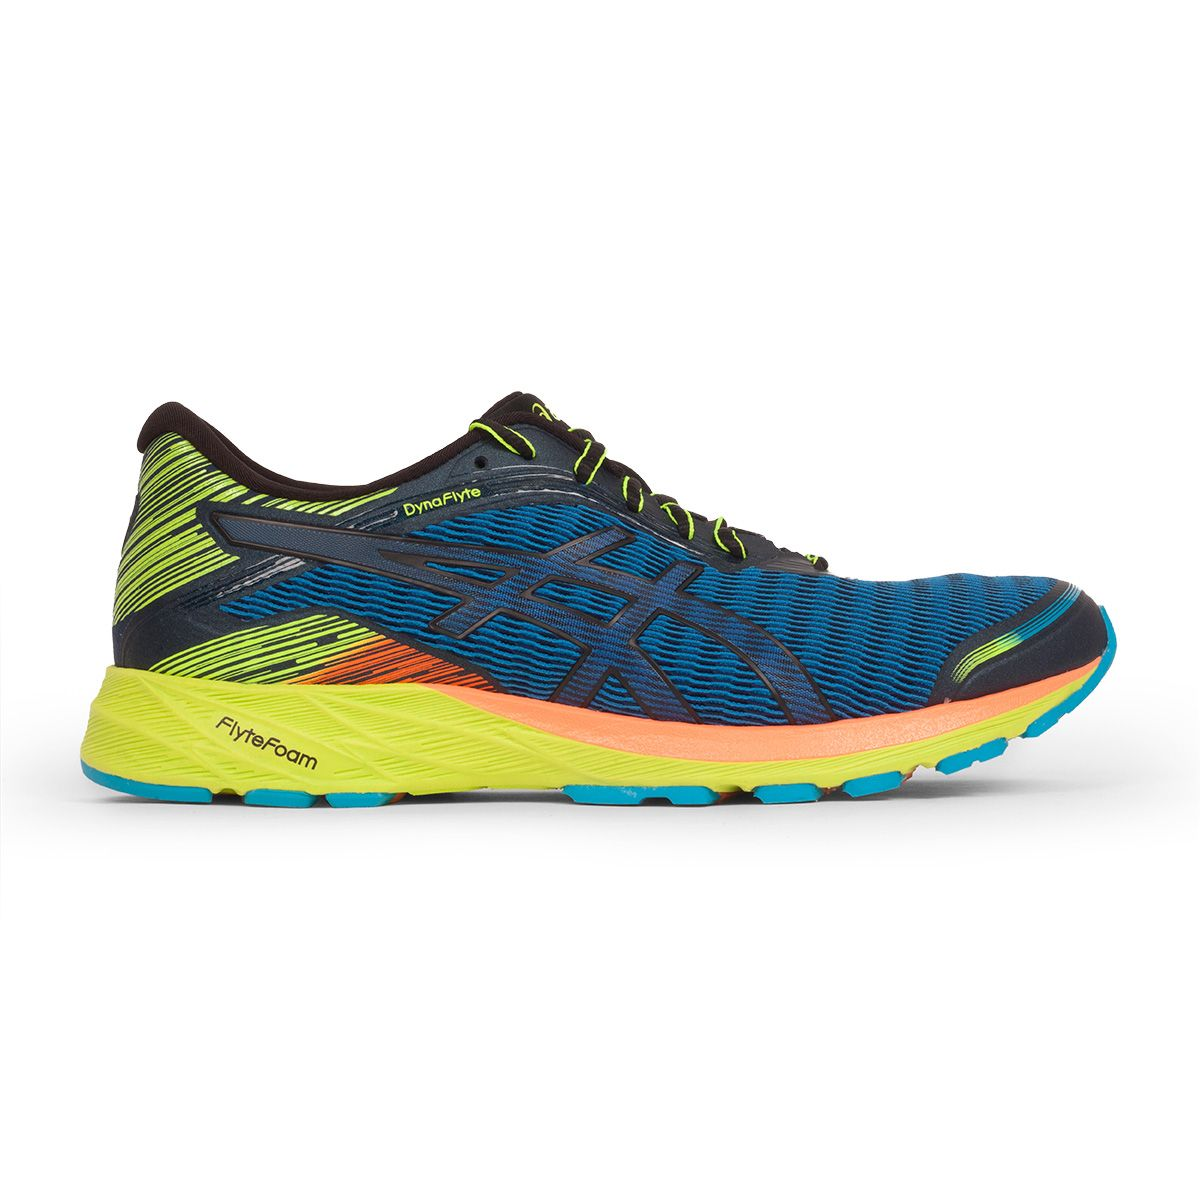 100% authentic 90d78 c52b6 Asics Dynaflyte Men's | Keep Your Feet Happy! | Asics ...